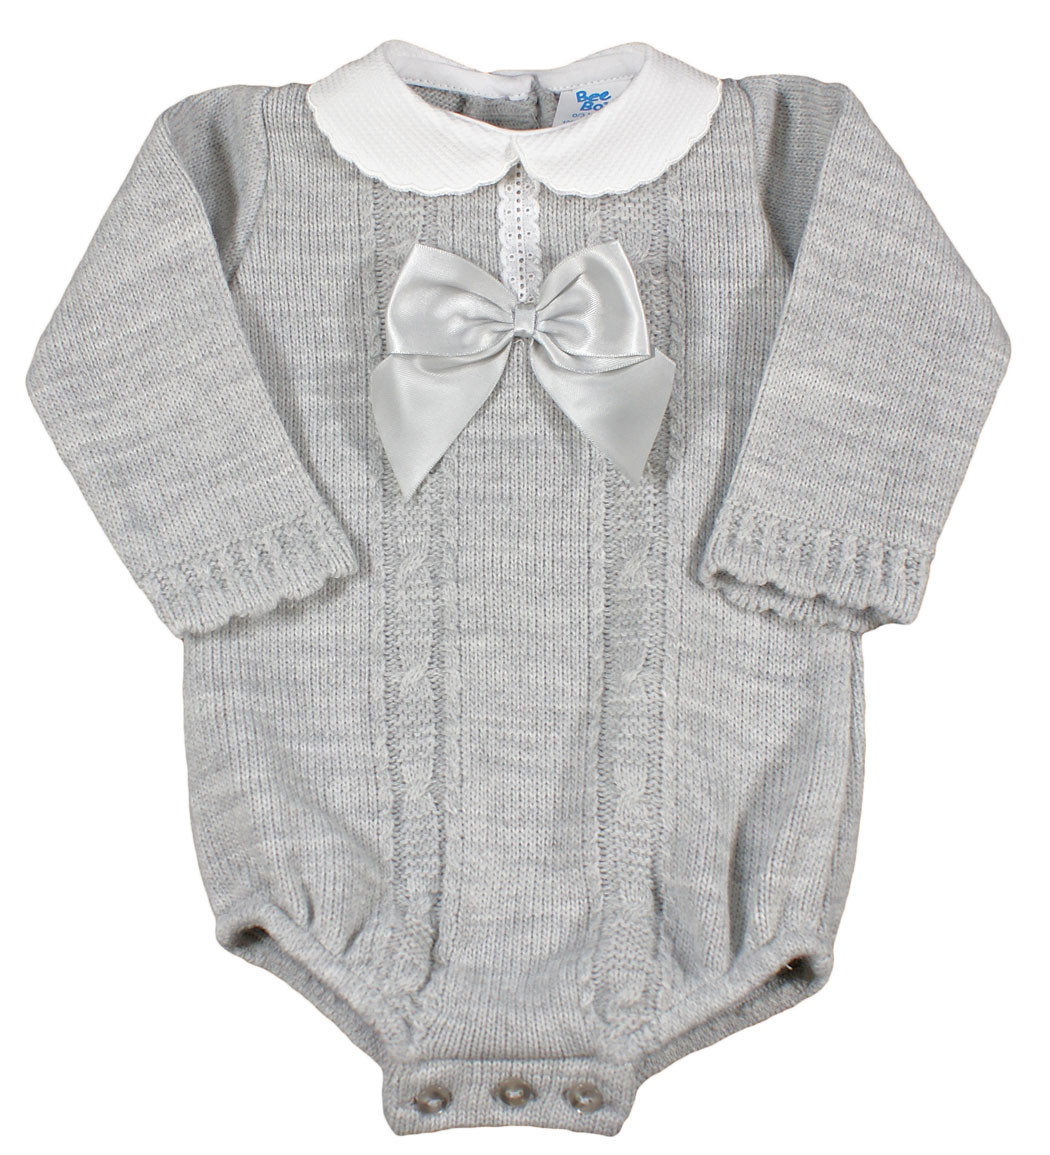 Spanish Style Long Sleeve Baby Grey Knitted Romper Bow & Collar